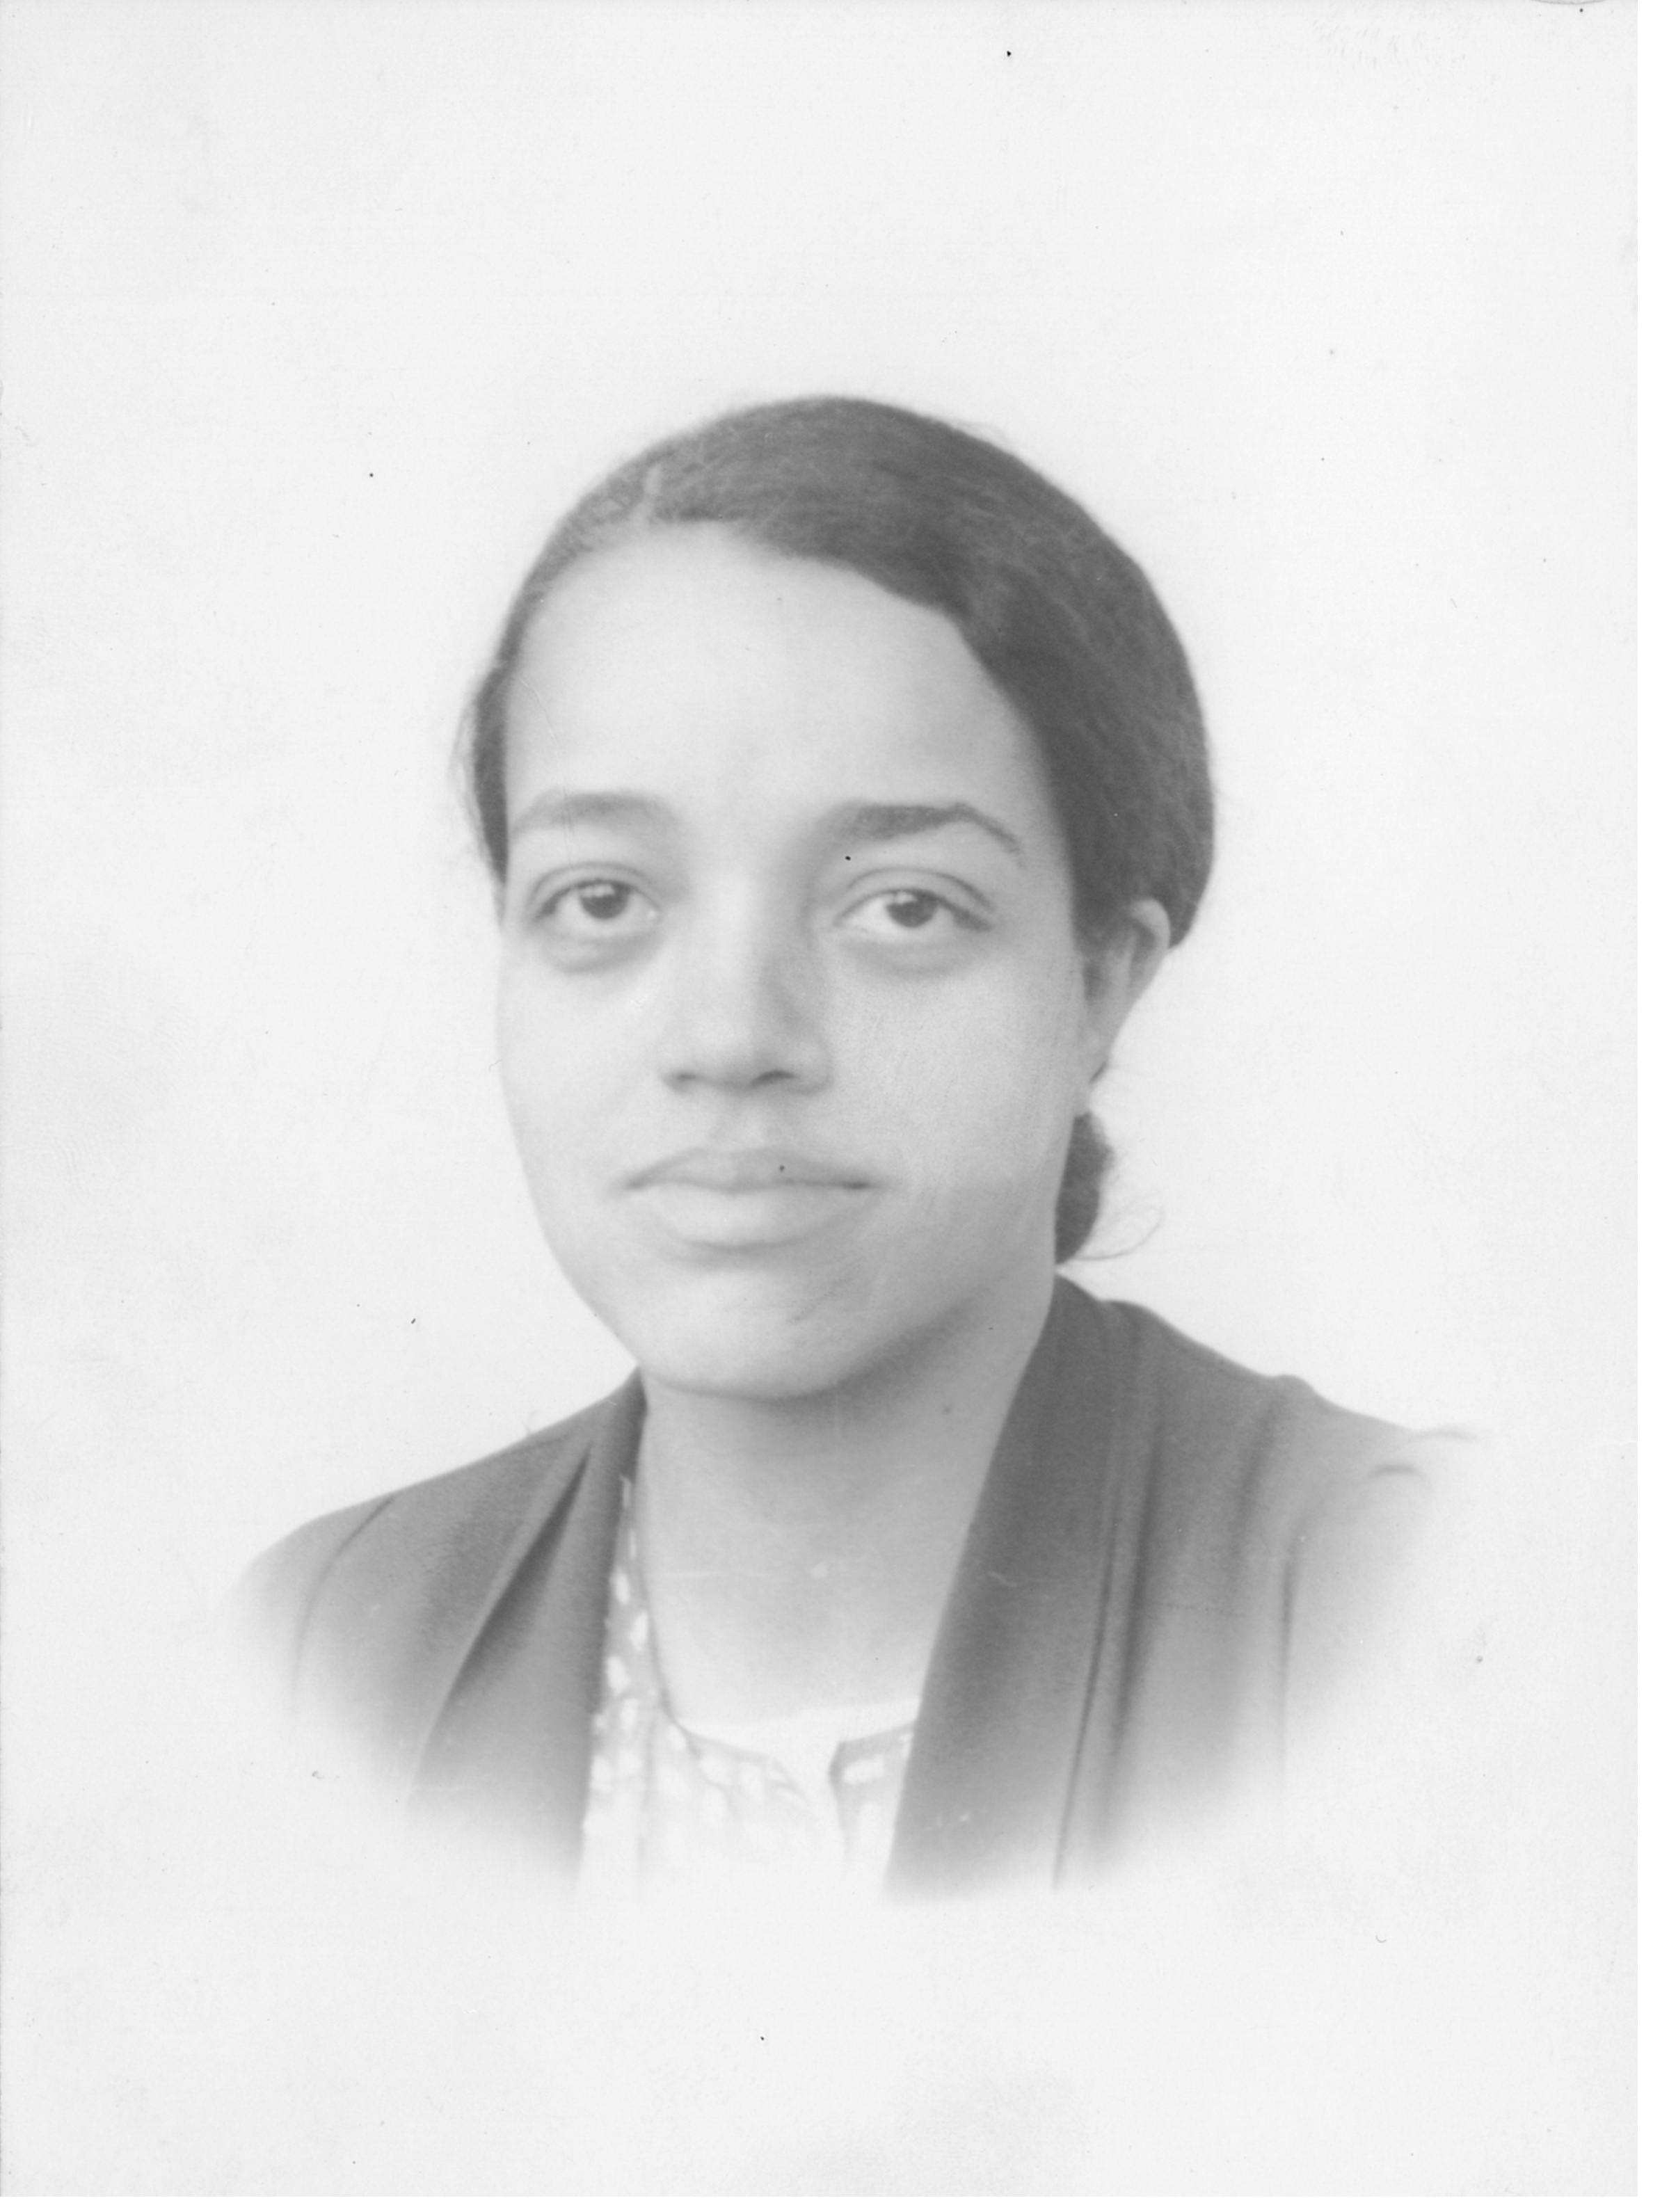 Vaughan was an African American woman who famously worked for NASA as part of the first group of African Americans hired by mathematicians. She became the first Black supervisor, where she advocated for the Black mathematicians working under her, even teaching her colleagues FORTRAN. Her presence was essential to America's ascent into space and the opportunities for Black woman at NASA.